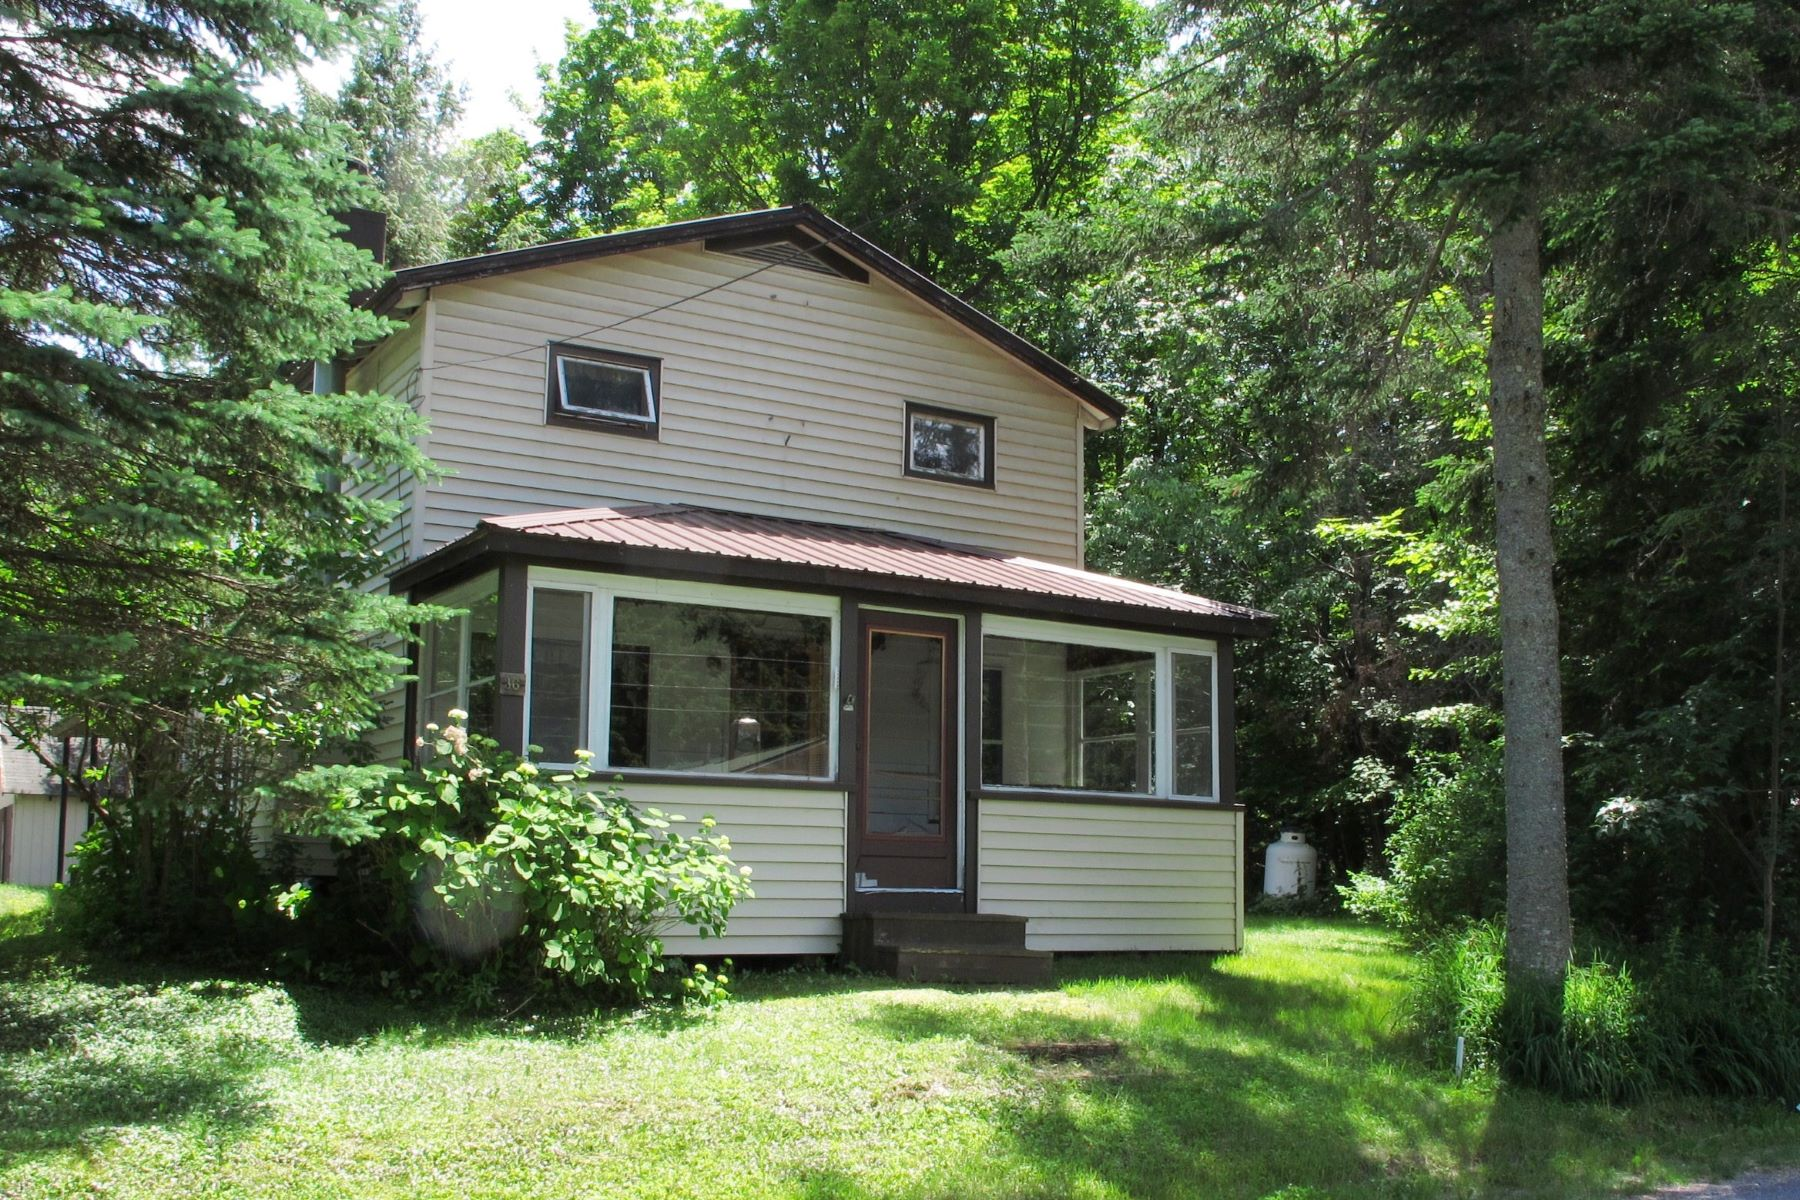 Maison unifamiliale pour l Vente à Year round home close to Seventh Lake 36 Seventh Lake Rd Inlet, New York 13360 États-Unis